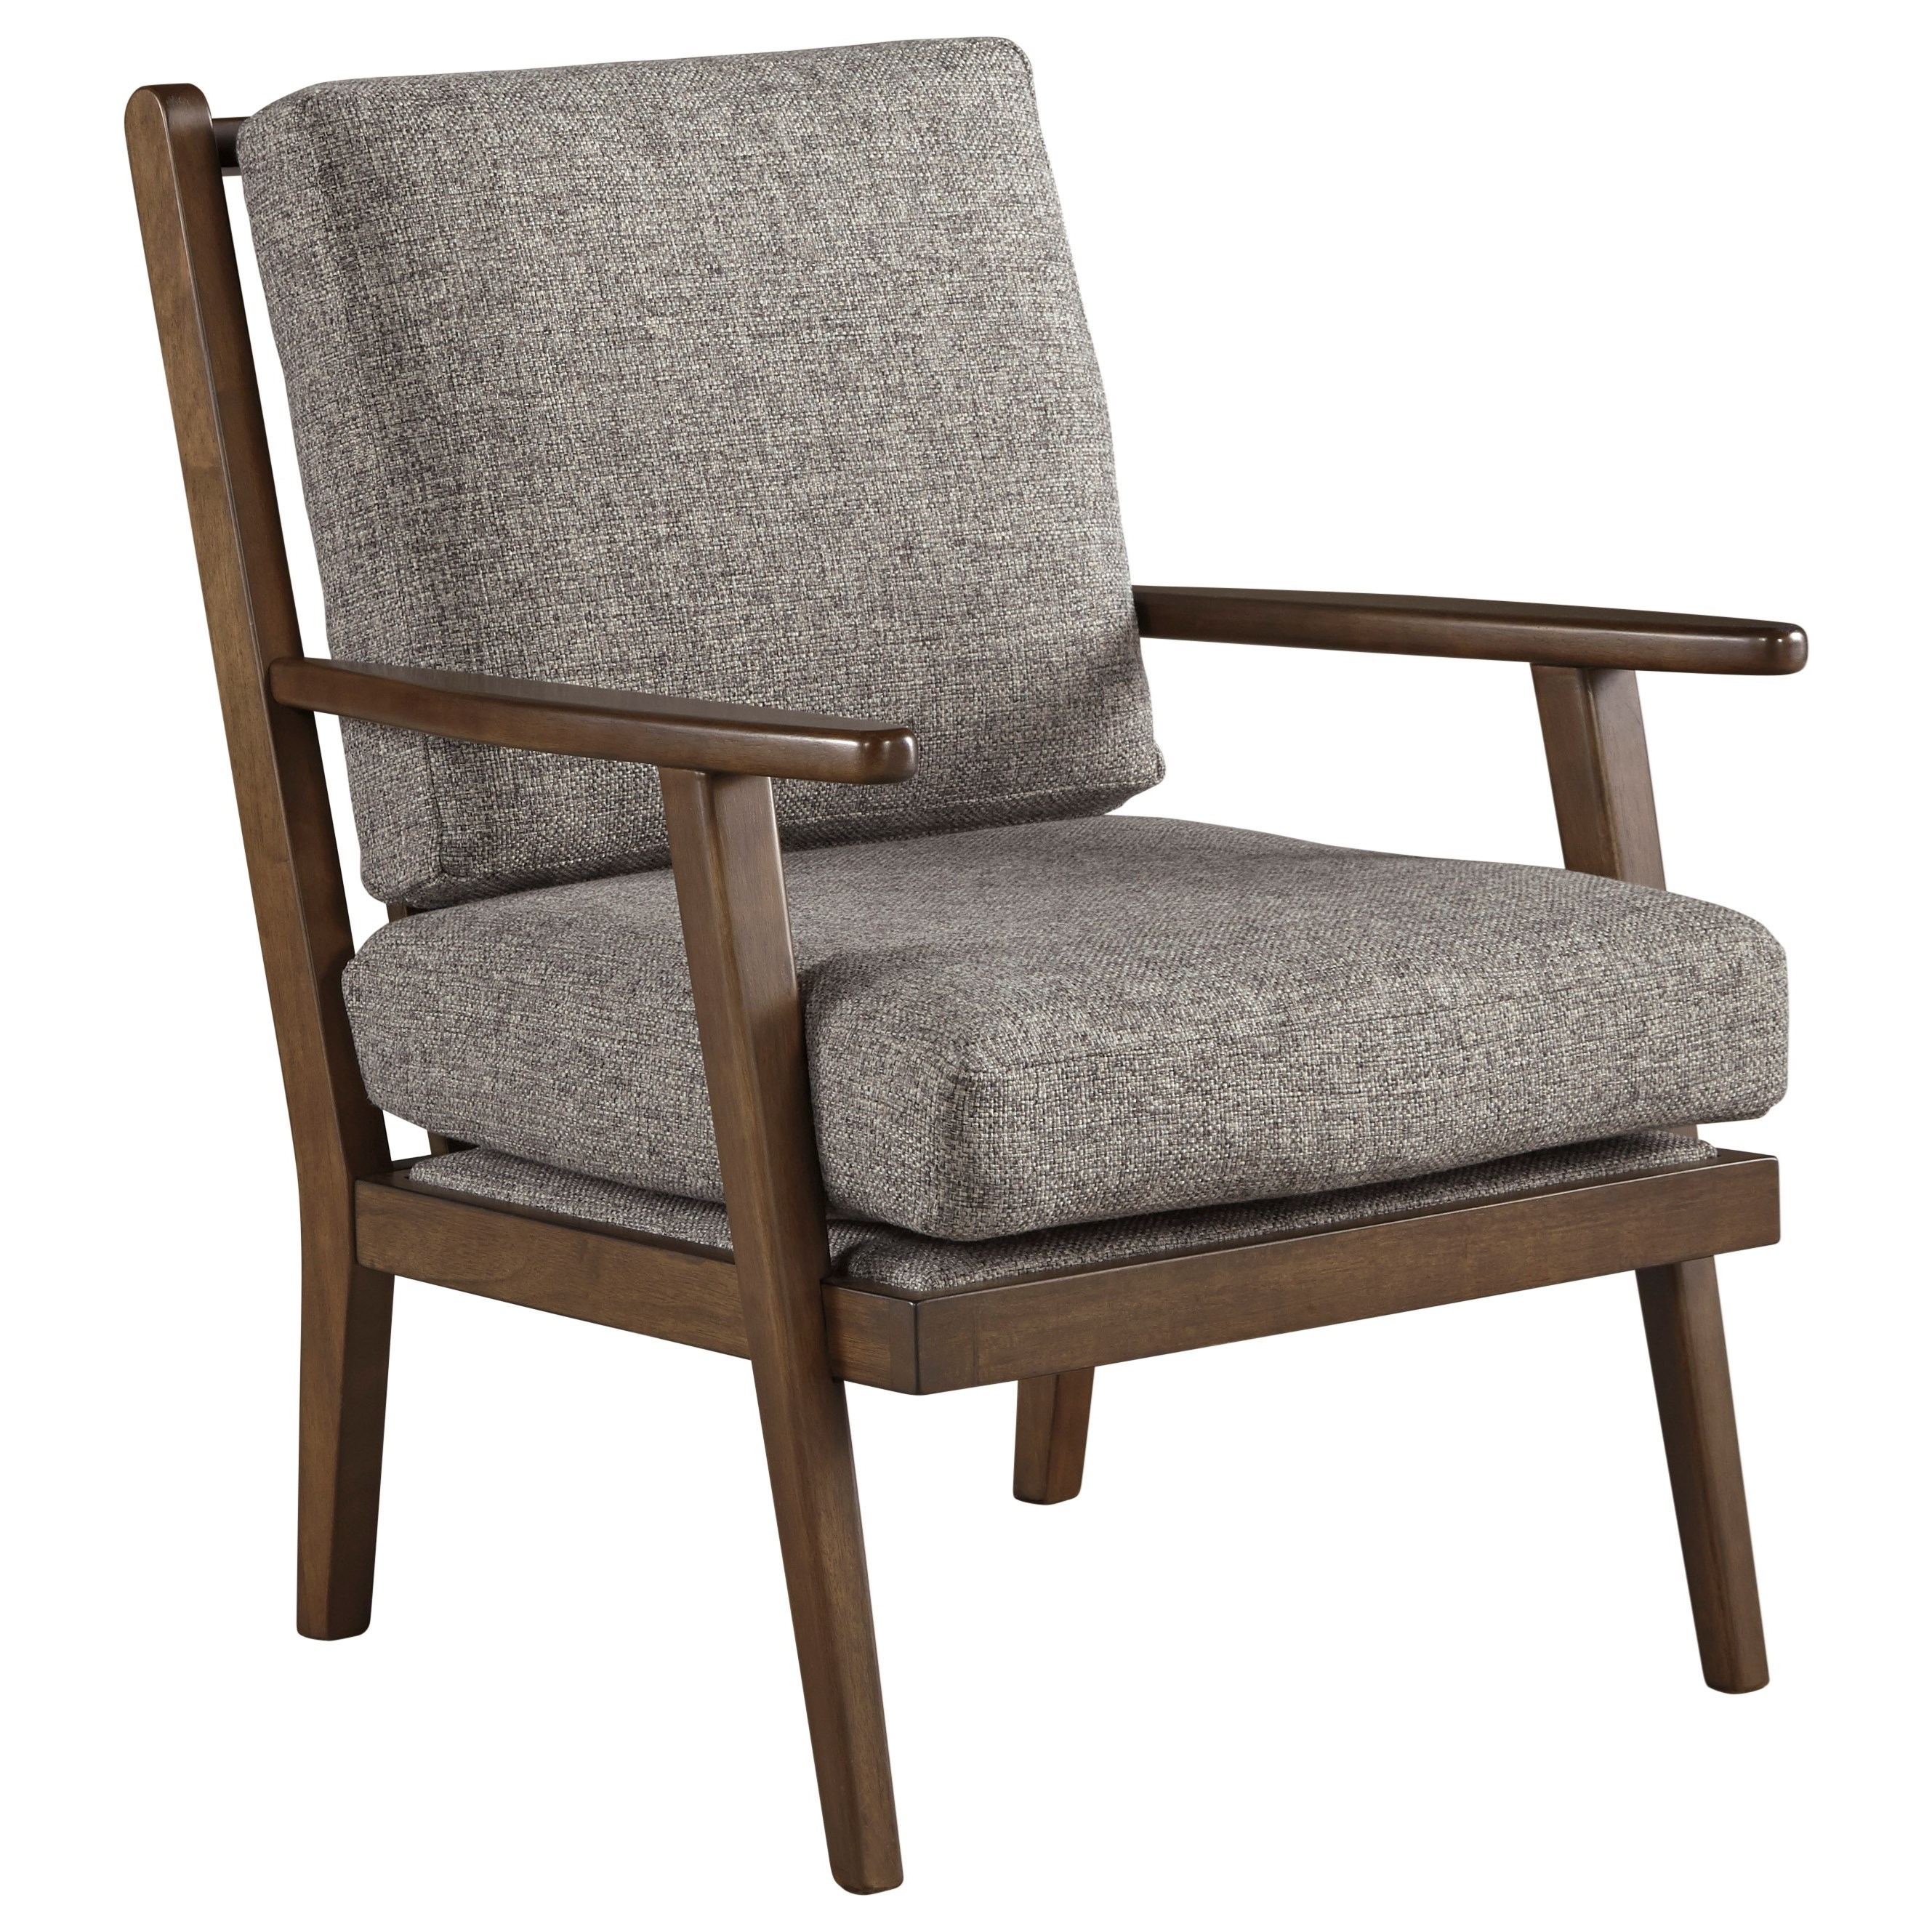 Ashley Furniture Zardoni Danish Modern Style Accent Chair